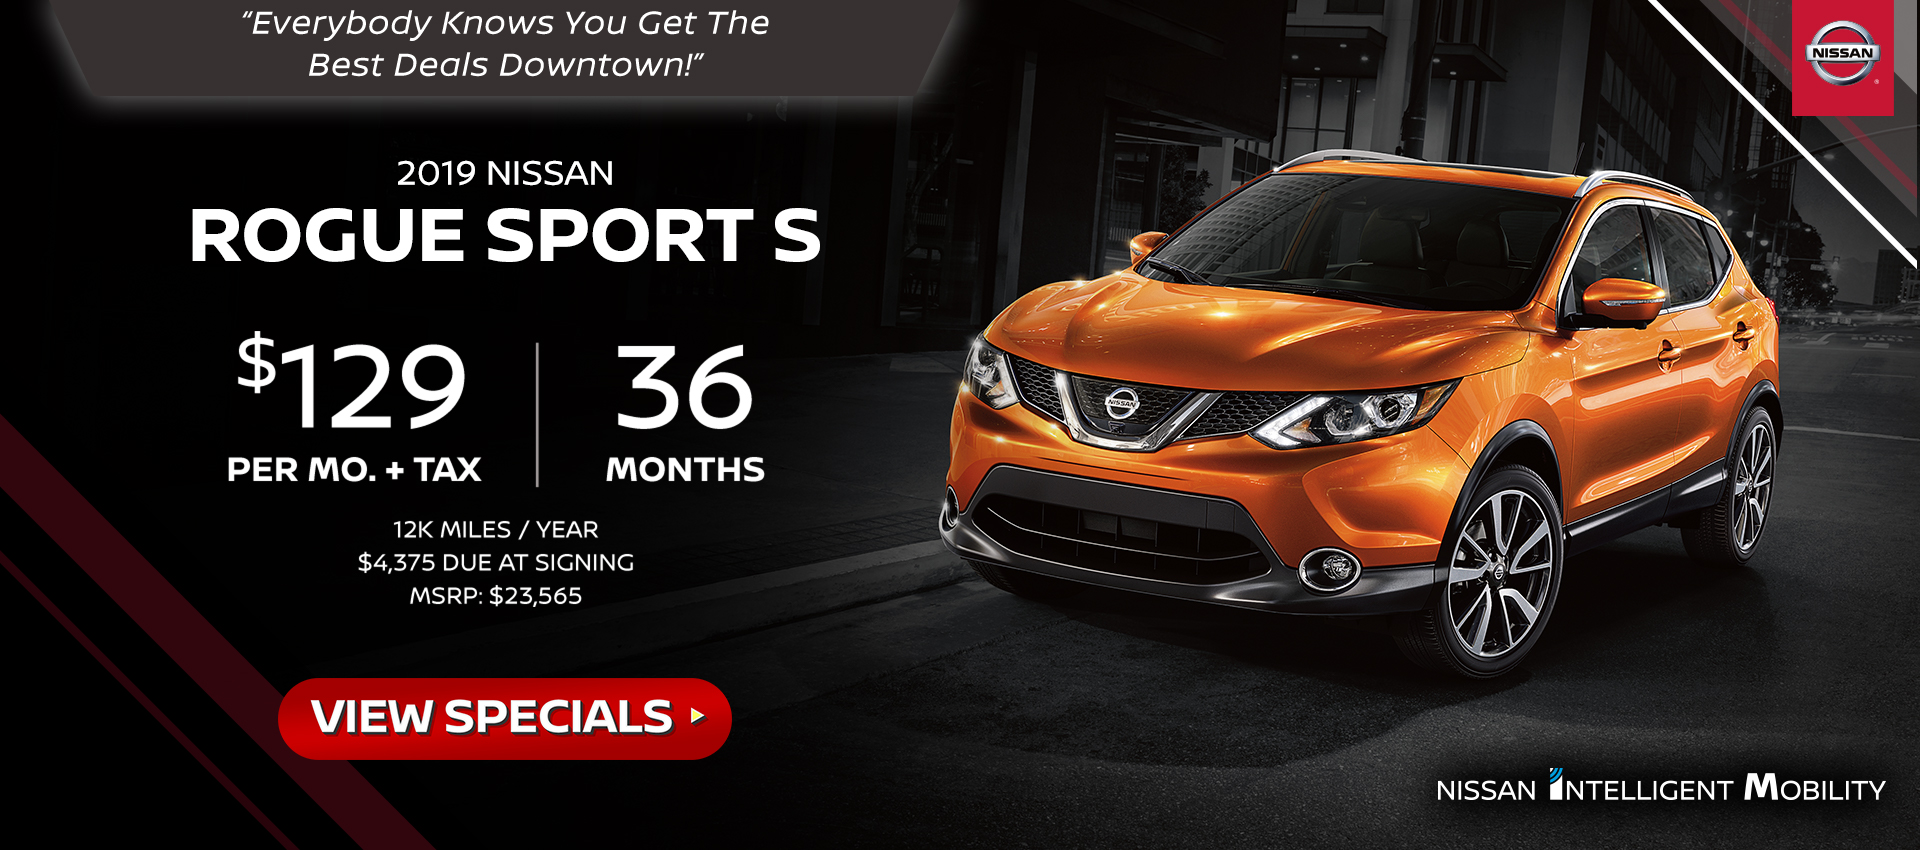 Nissan Dealership Los Angeles >> Nissan Dealer Los Angeles Hollywood Pasadena Glendale Nissan